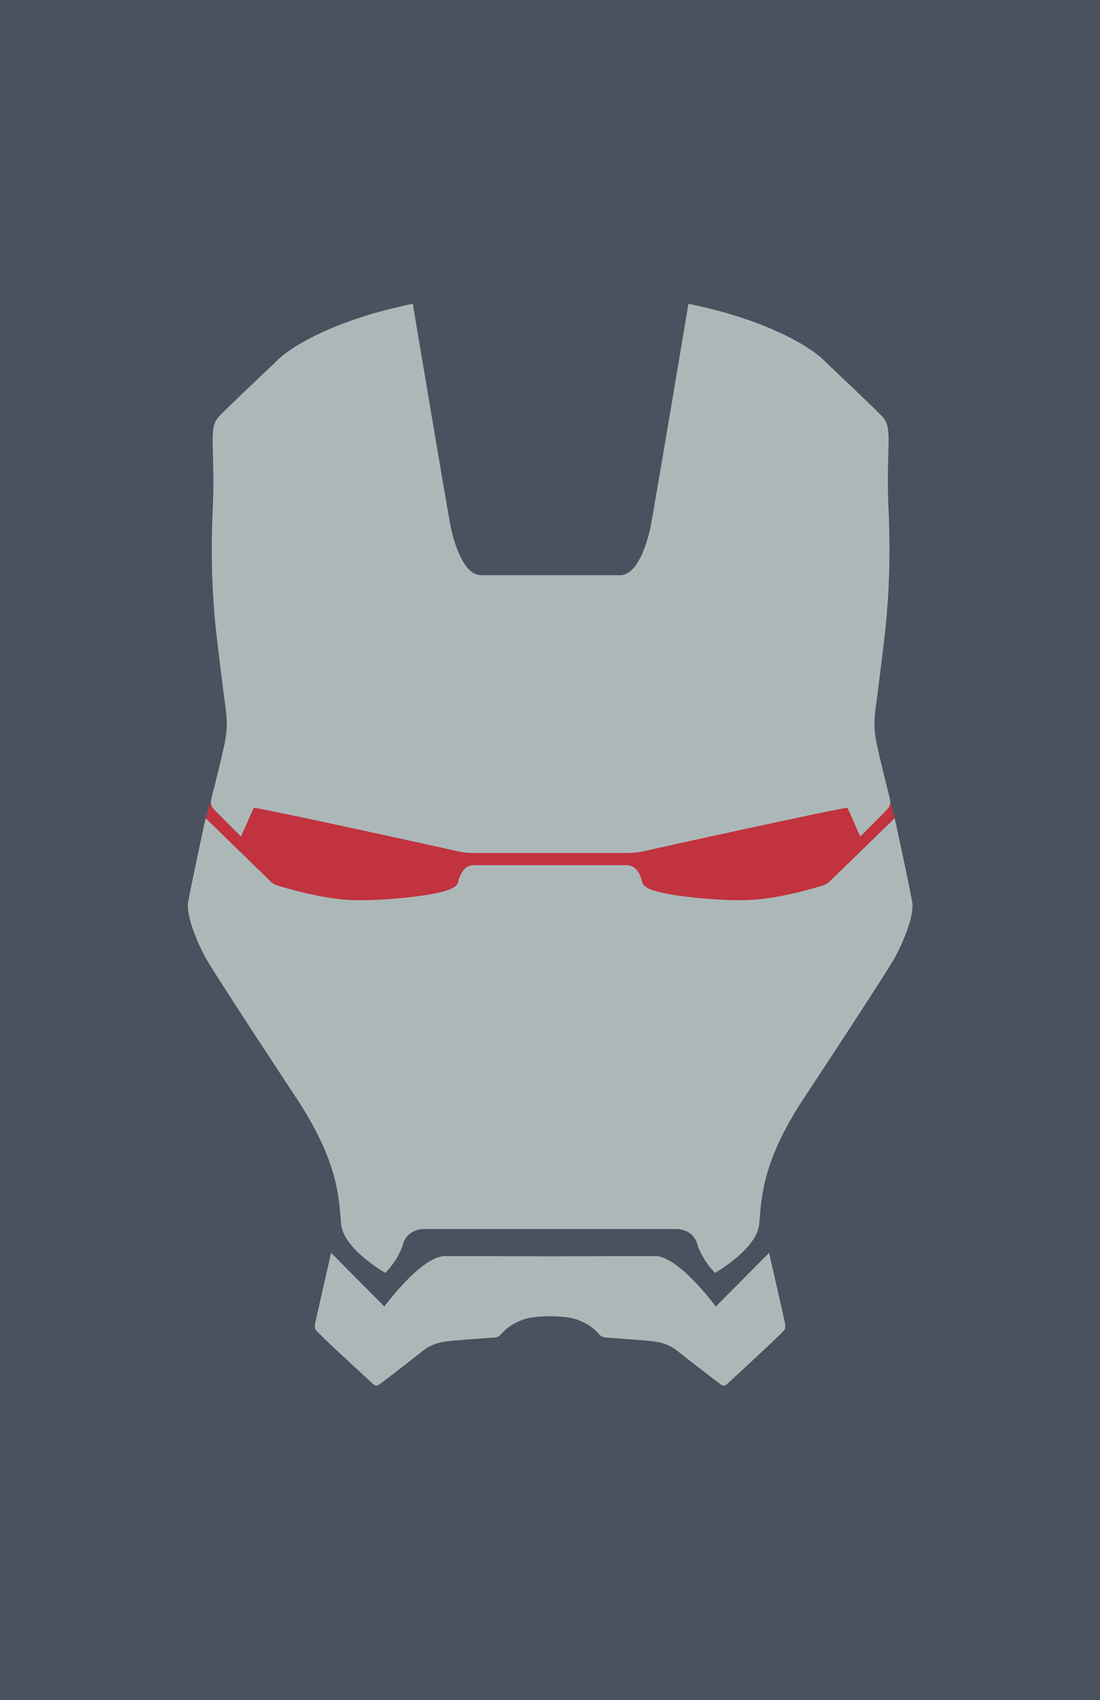 War Machine minimalist helmet design by Minimalist Heroes